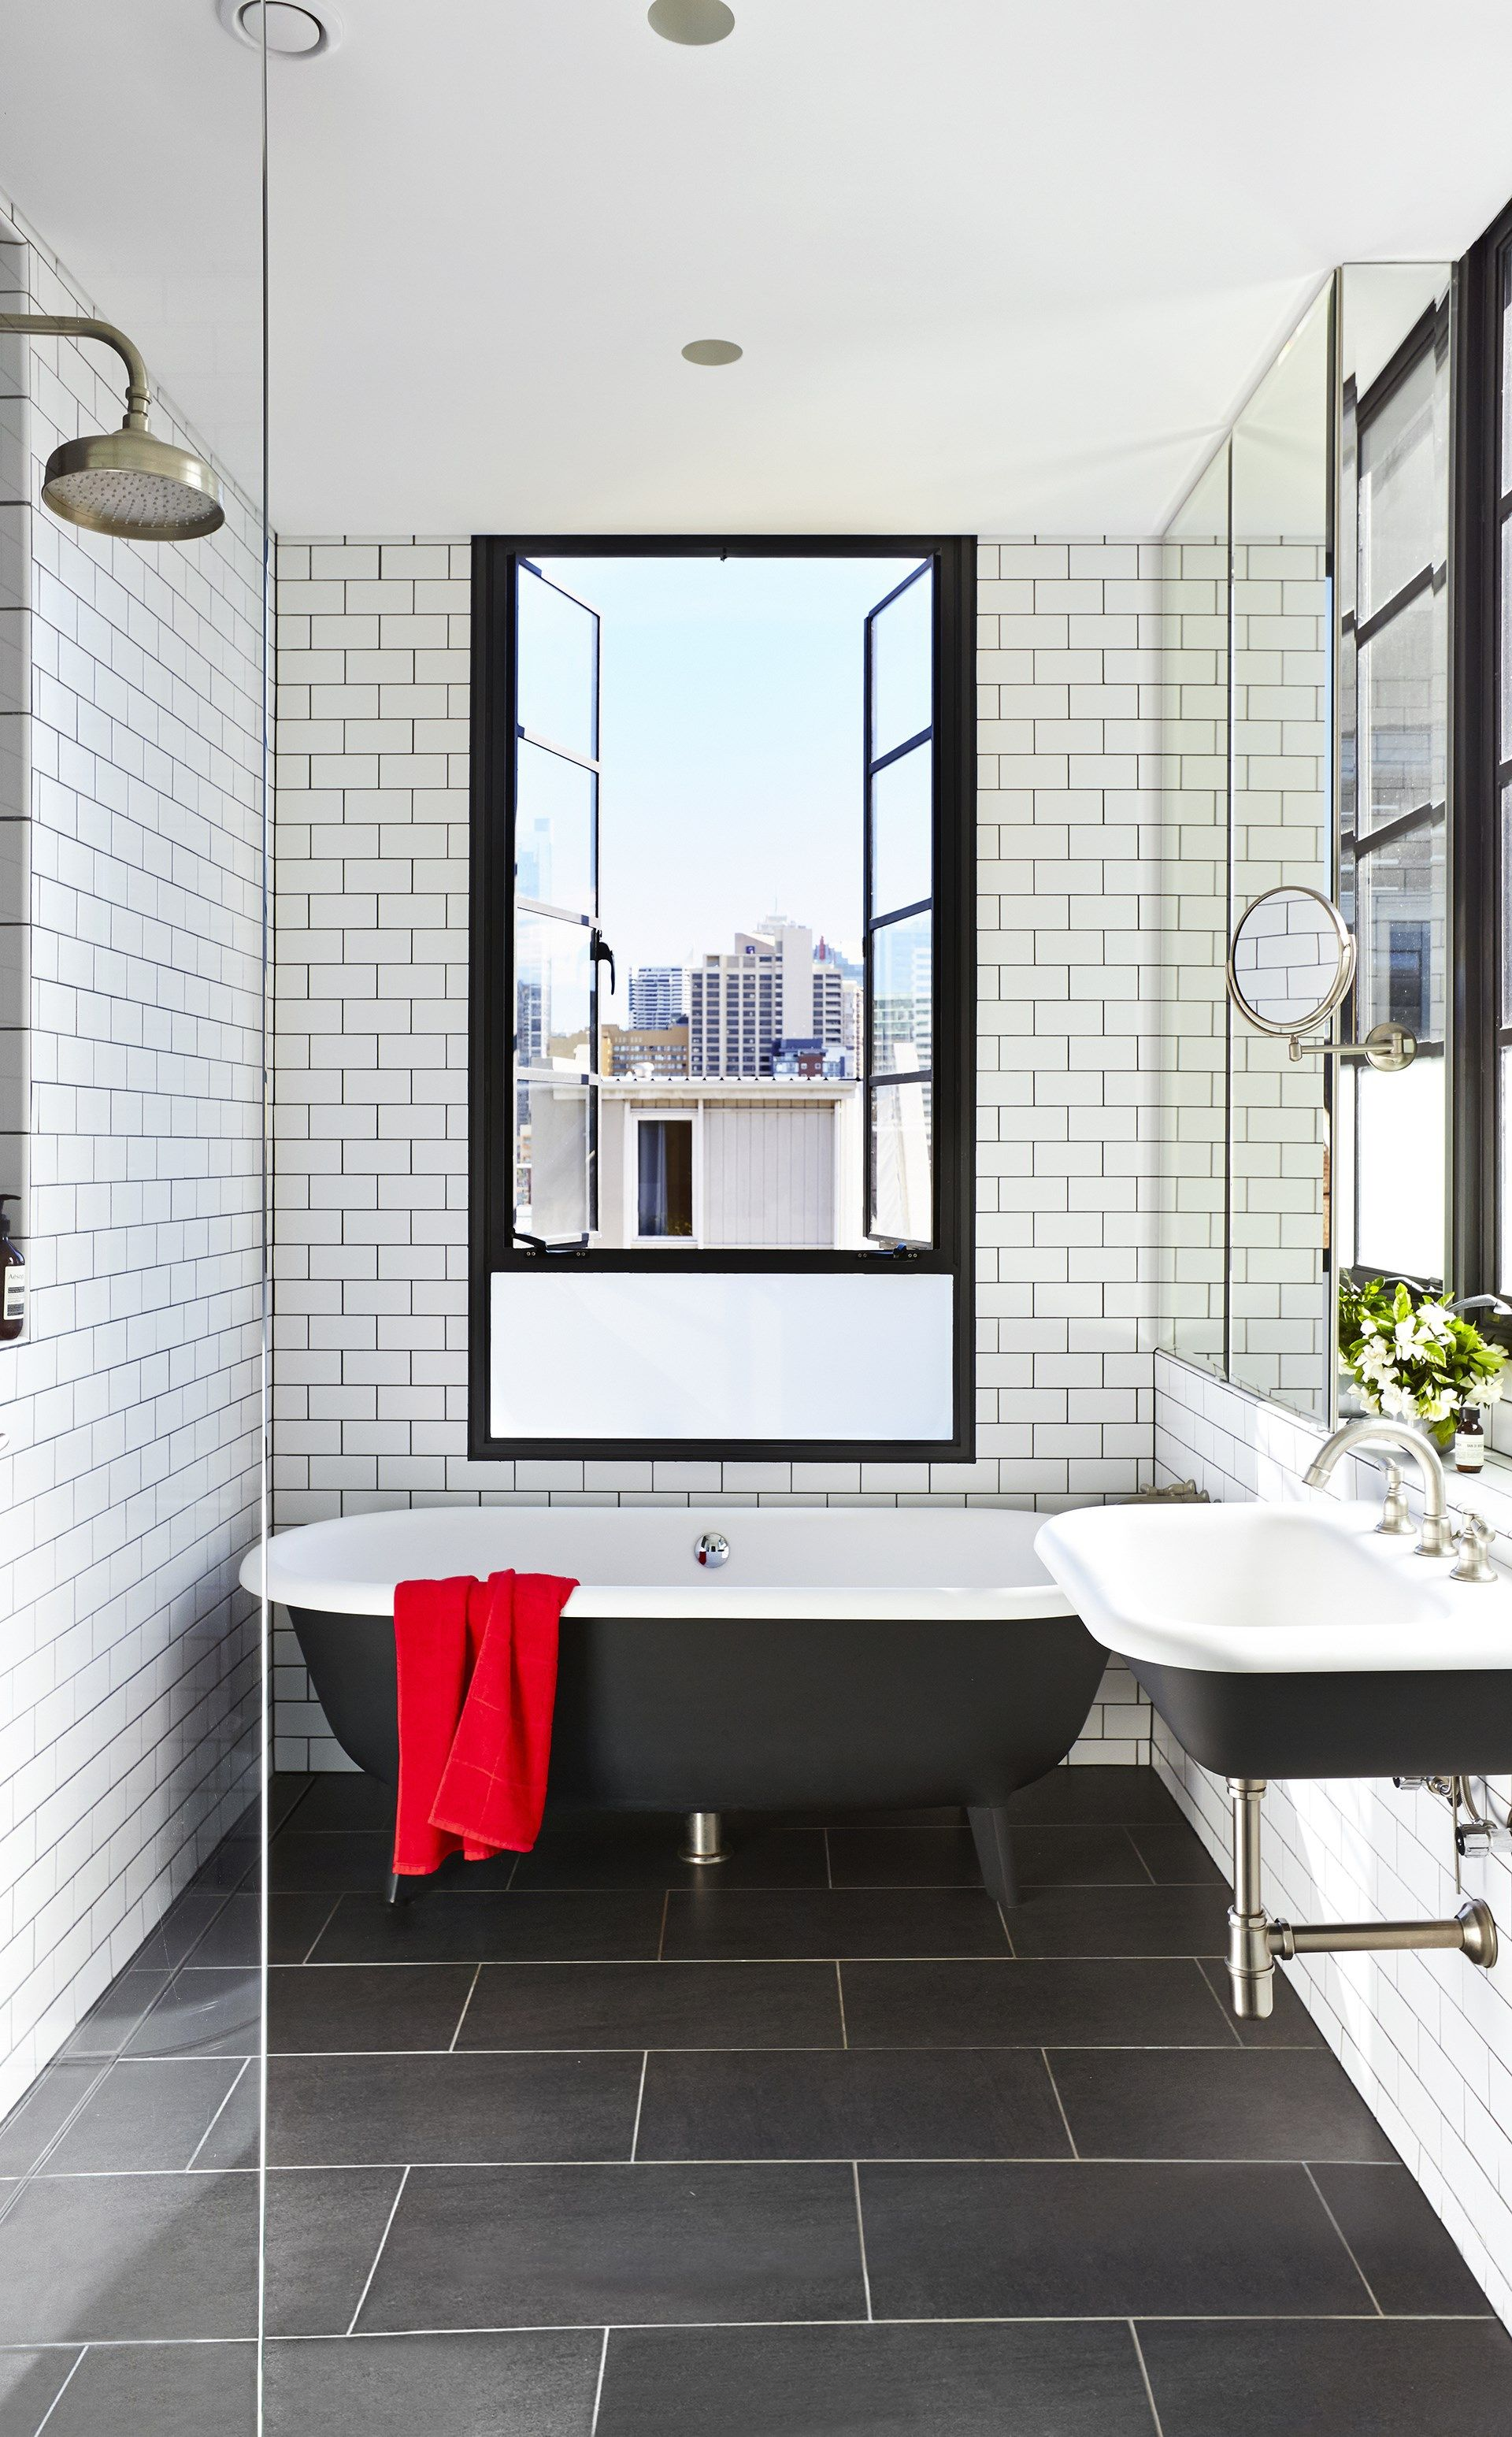 10 Timeless Black & White Bathrooms | John paul, Grout and Subway tiles